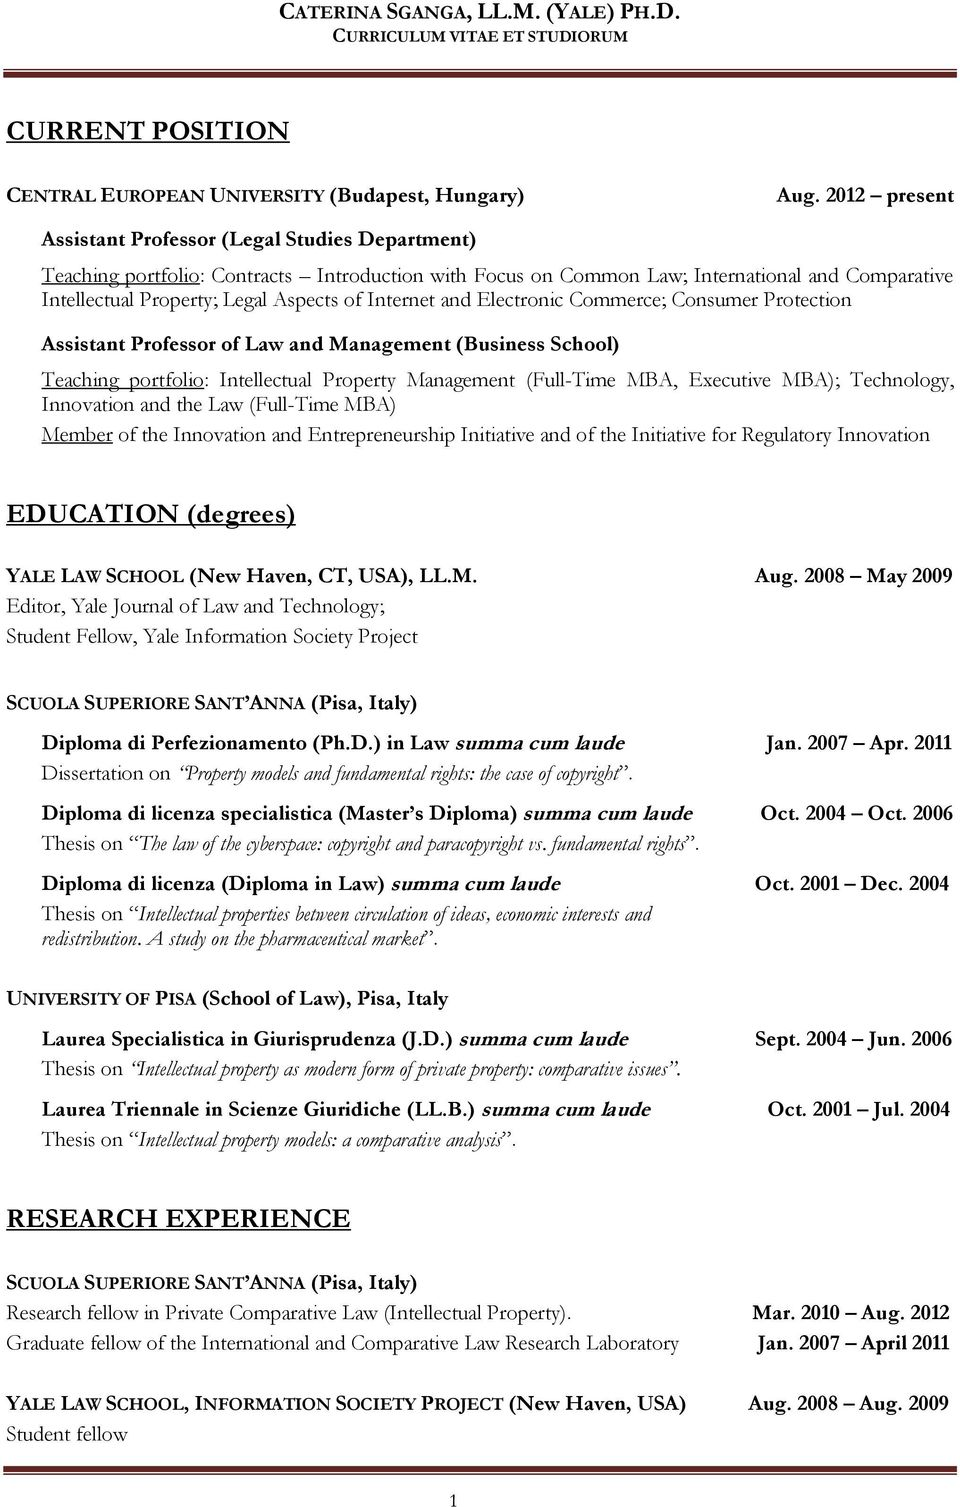 CURRENT POSITION  EDUCATION (degrees) RESEARCH EXPERIENCE